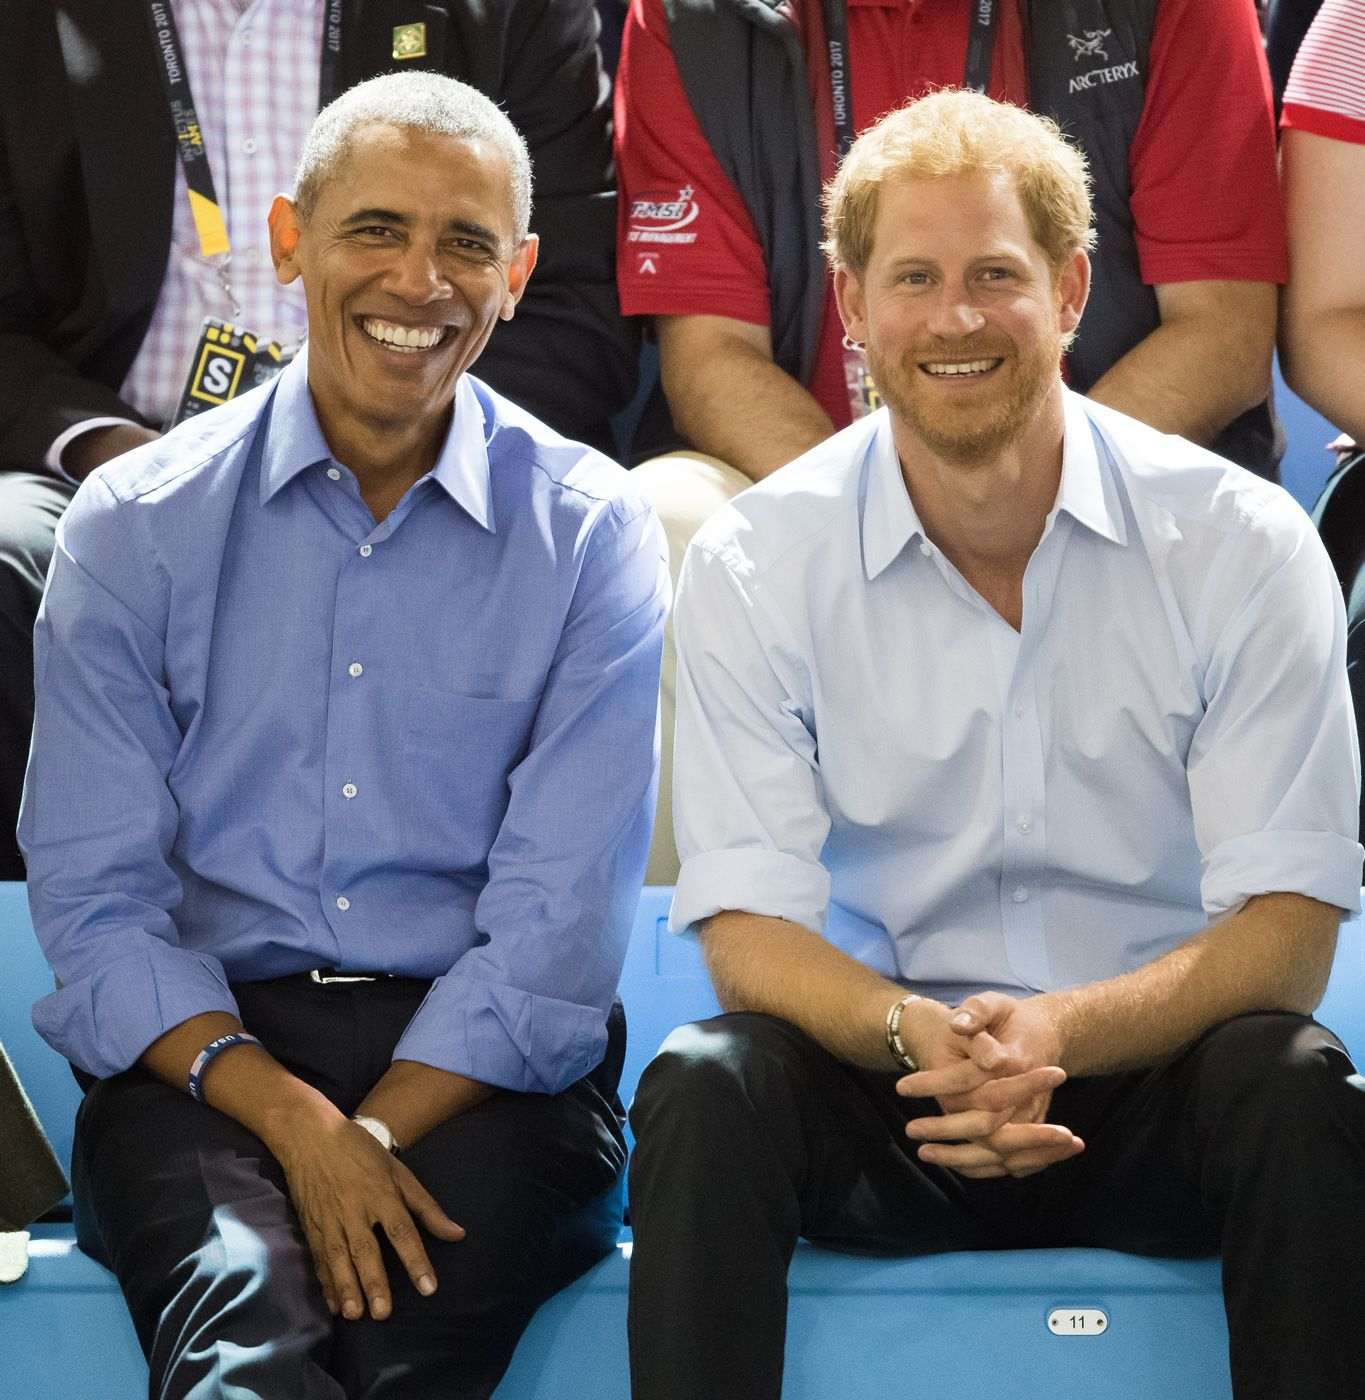 Barack Obama & Duke of Sussex